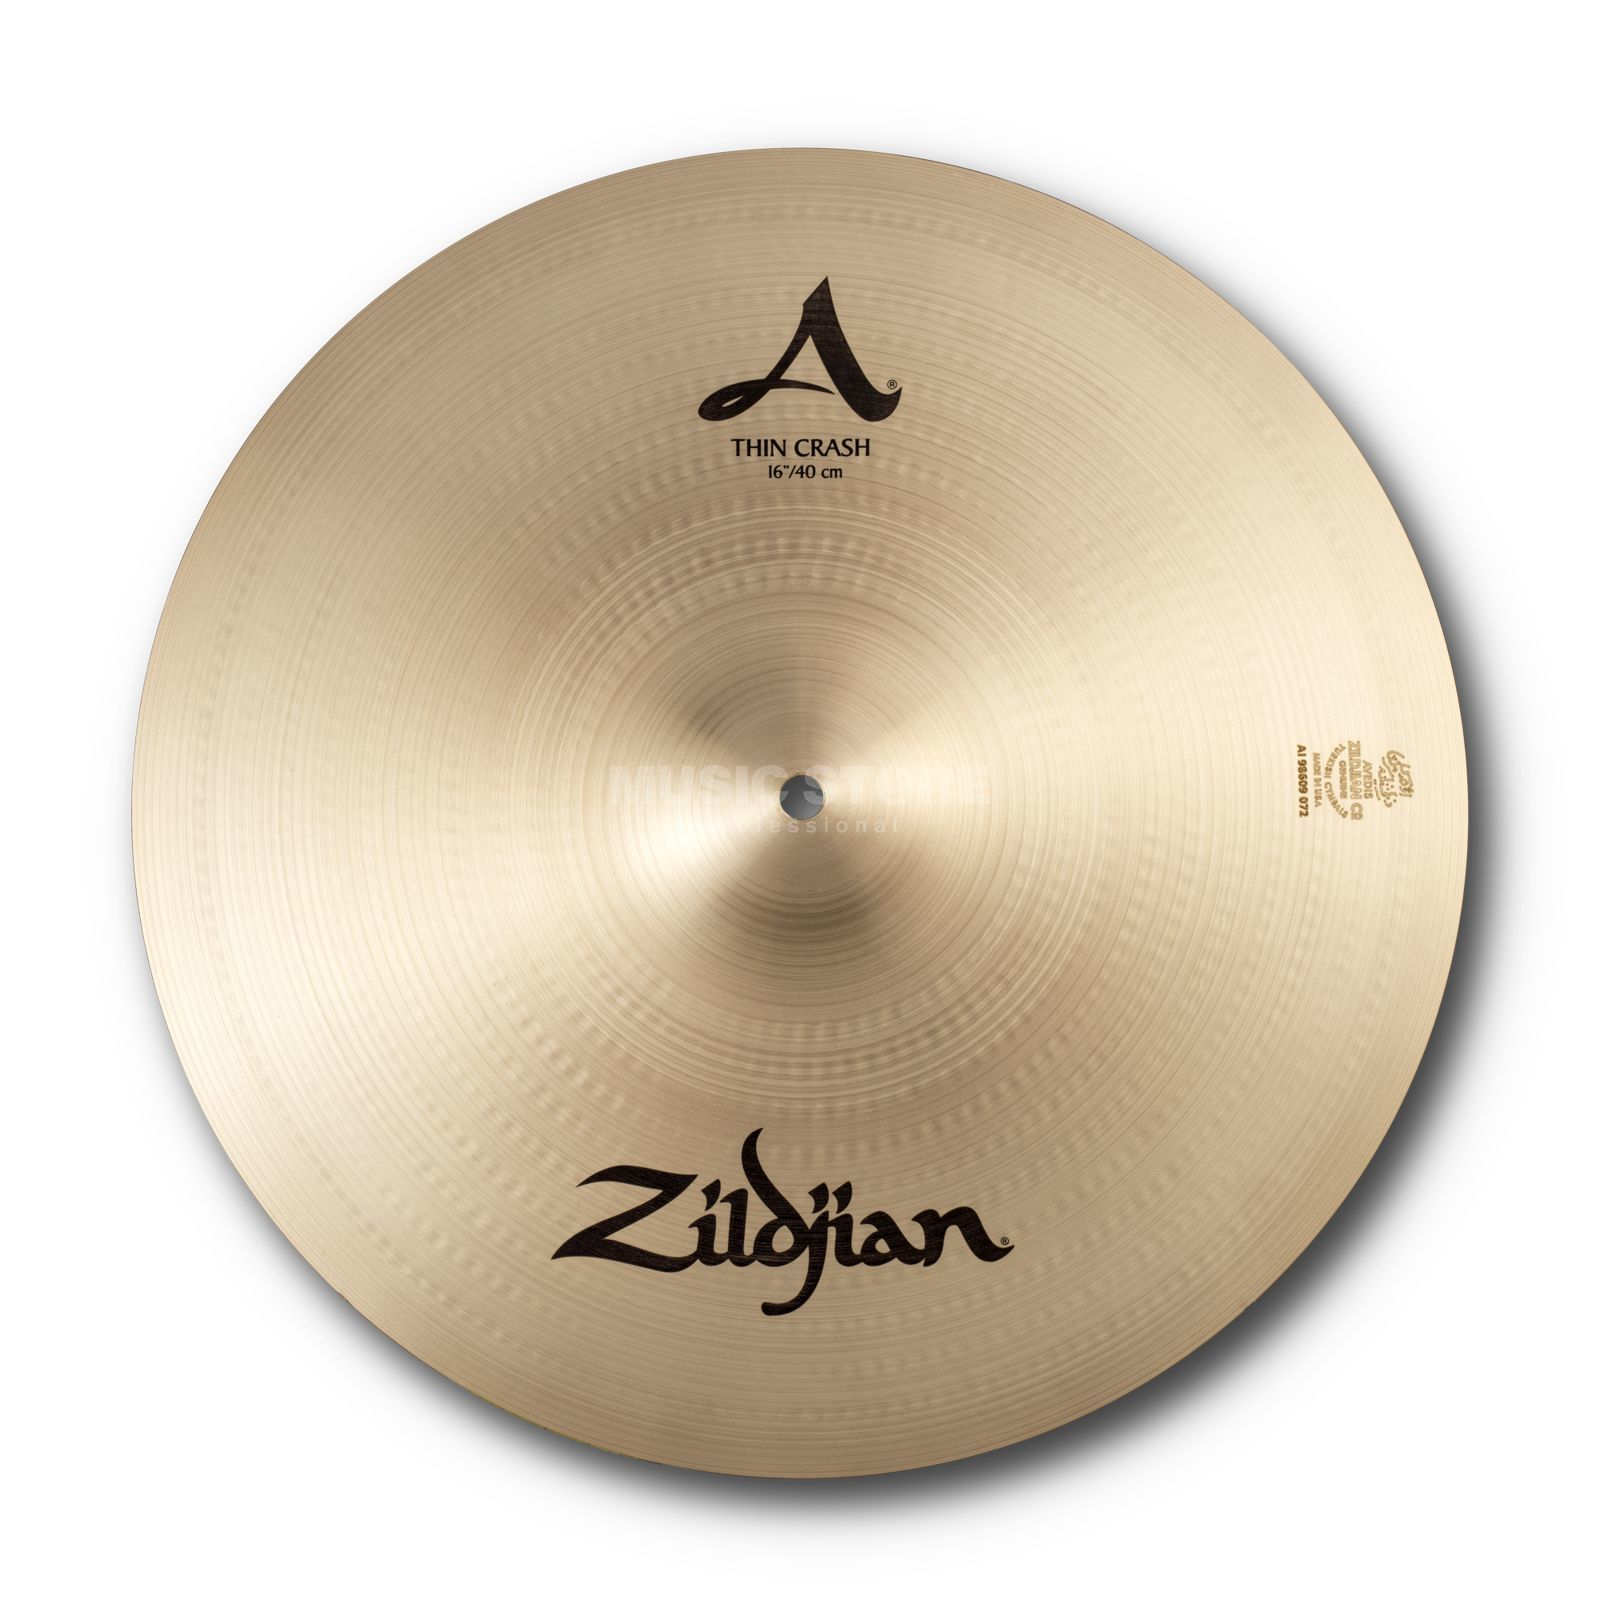 "Zildjian A' Zildjian Thin Crash 16"", Traditional Finish Produktbillede"